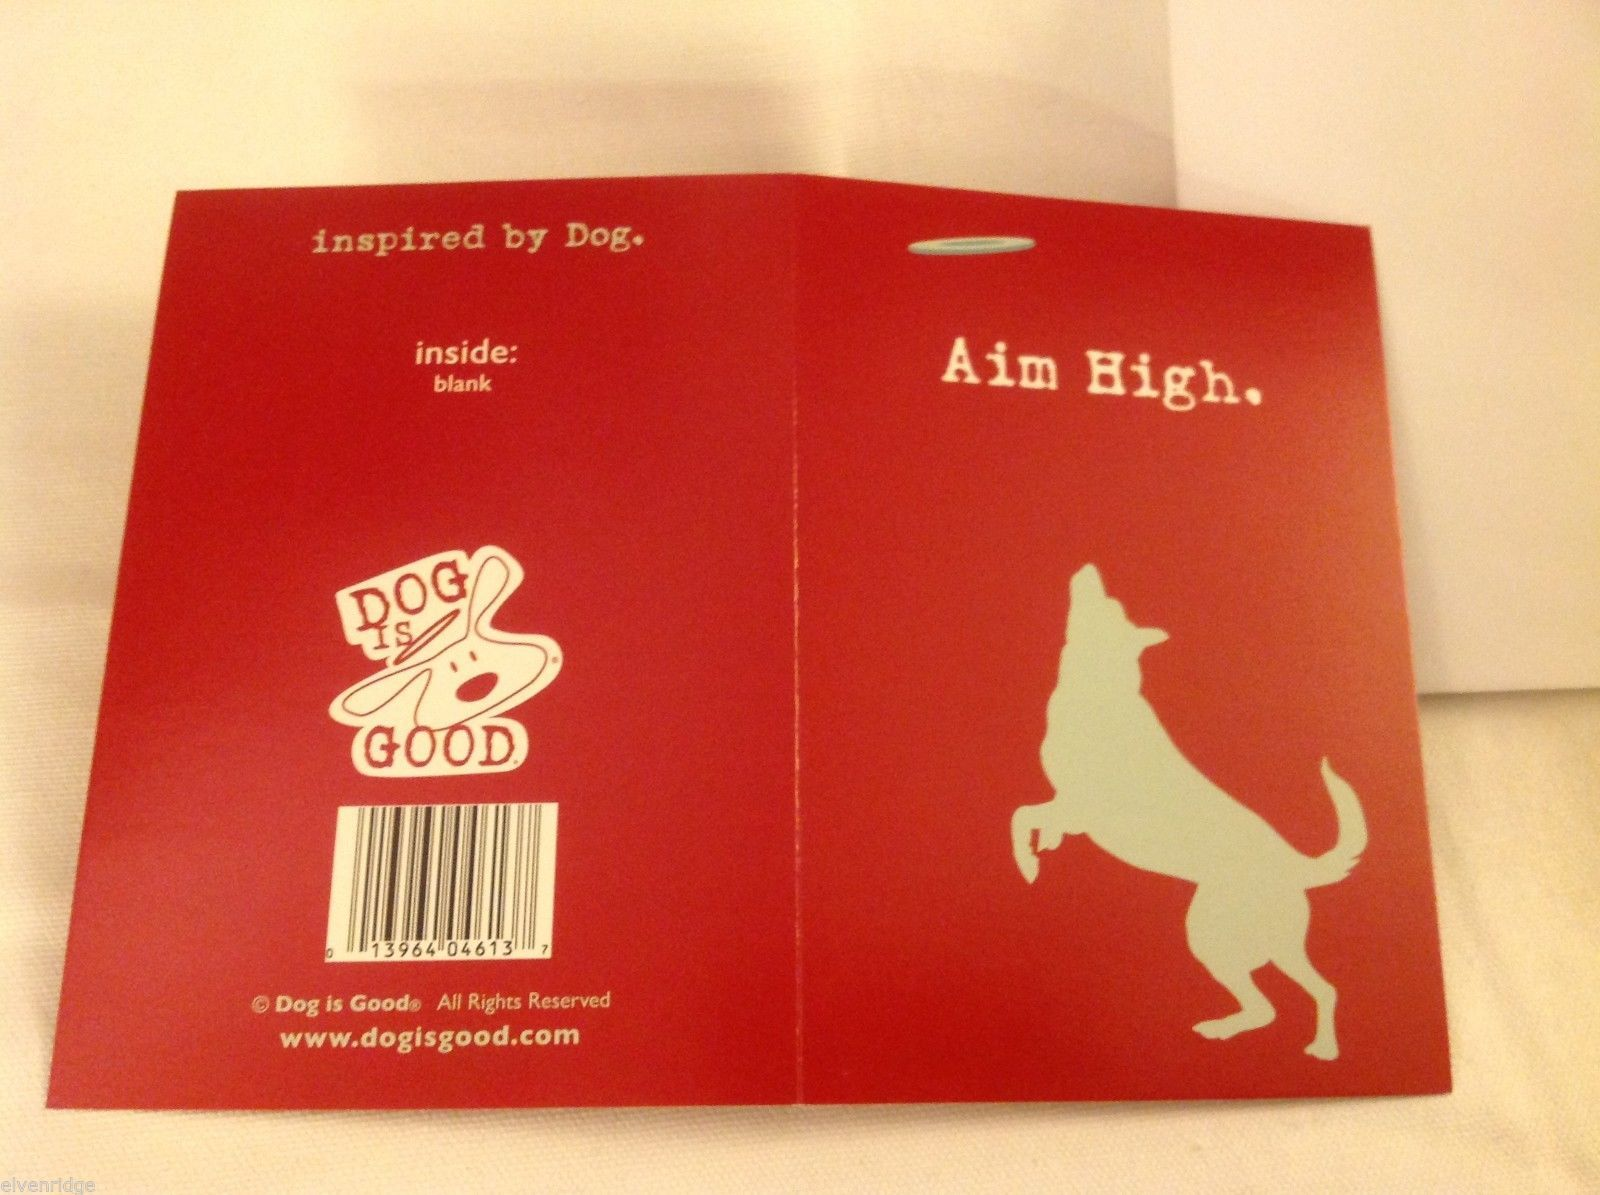 Canine Gift Greeting Card  DOG IS GOOD Aim High